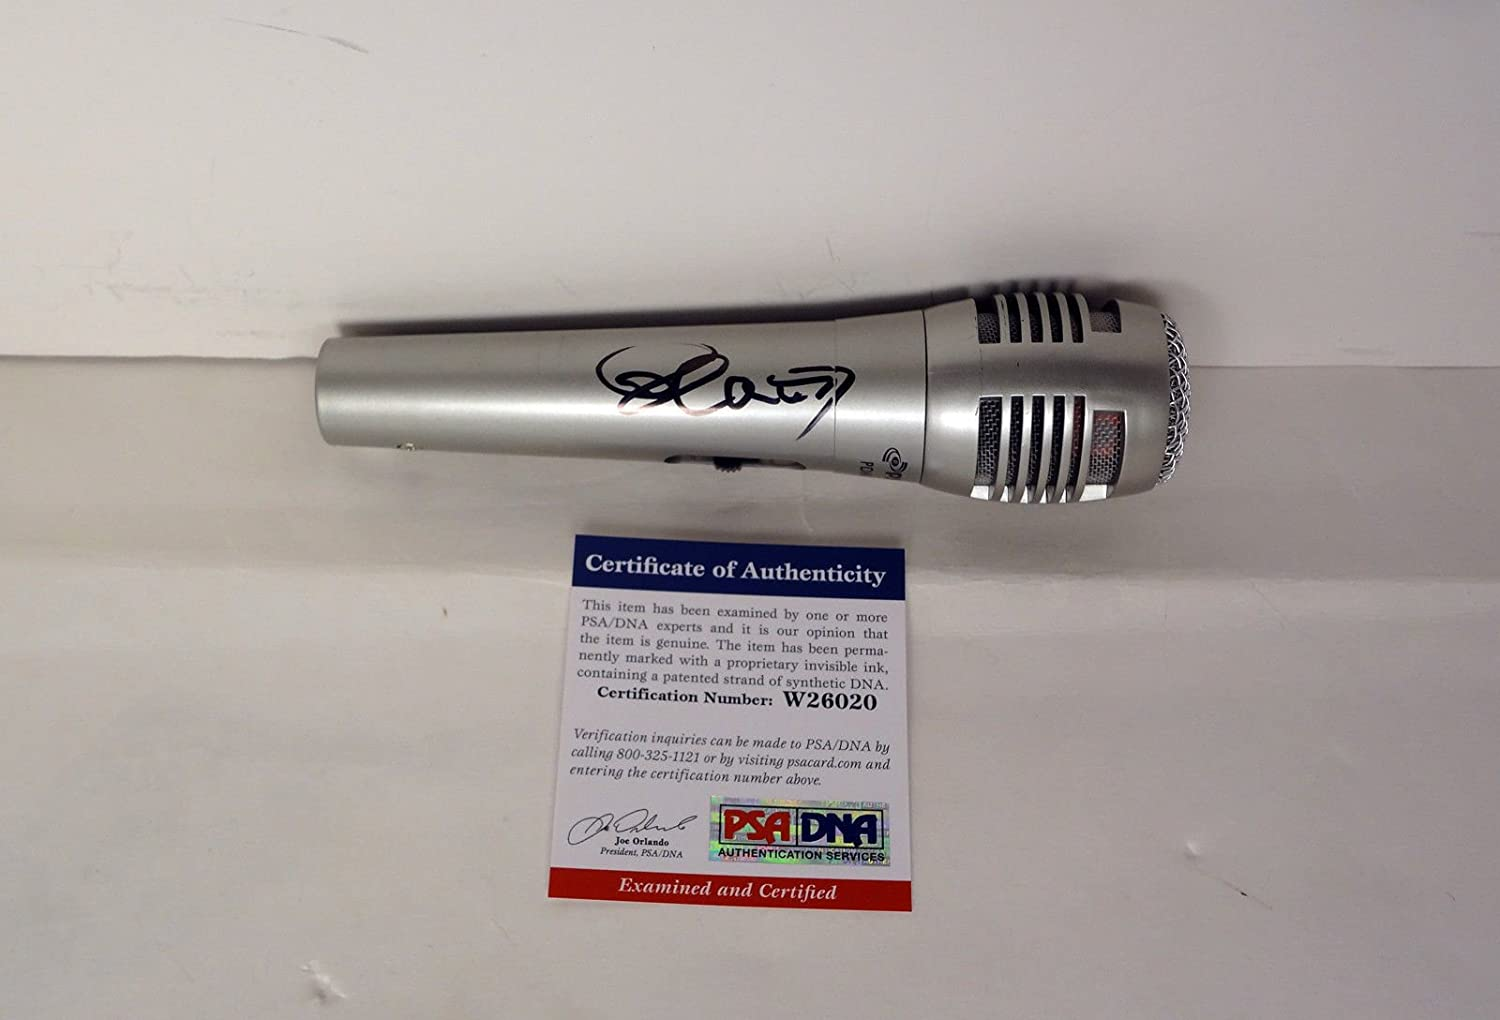 Placido Domingo The Three Tenors Microphone Signed Autograph Max 68% OFF Same day shipping PSA